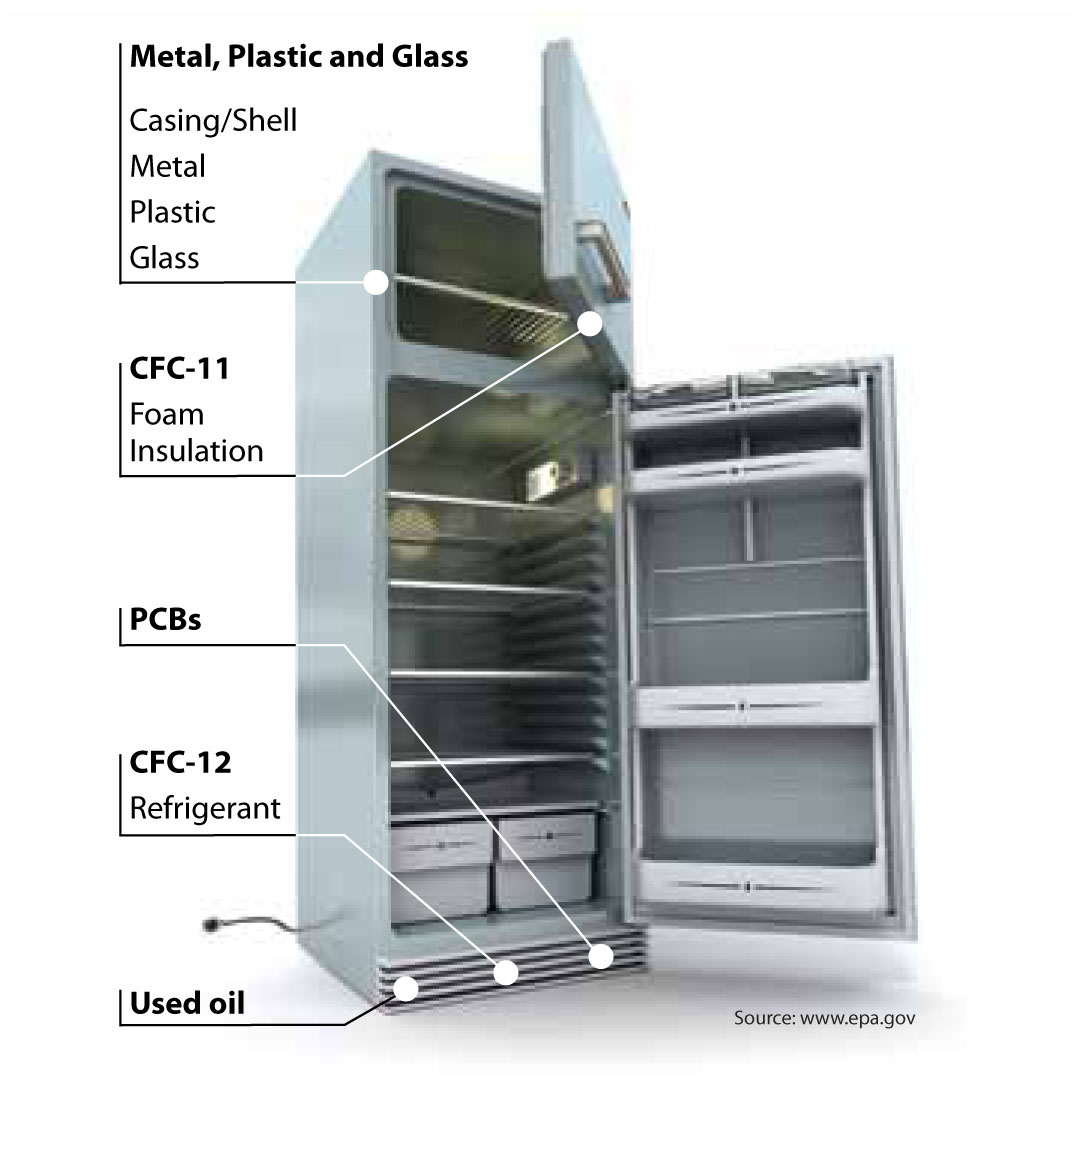 Commercial Side By Side Refrigerator Freezer Refrigerator Parts: Refrigerator Parts Pictures